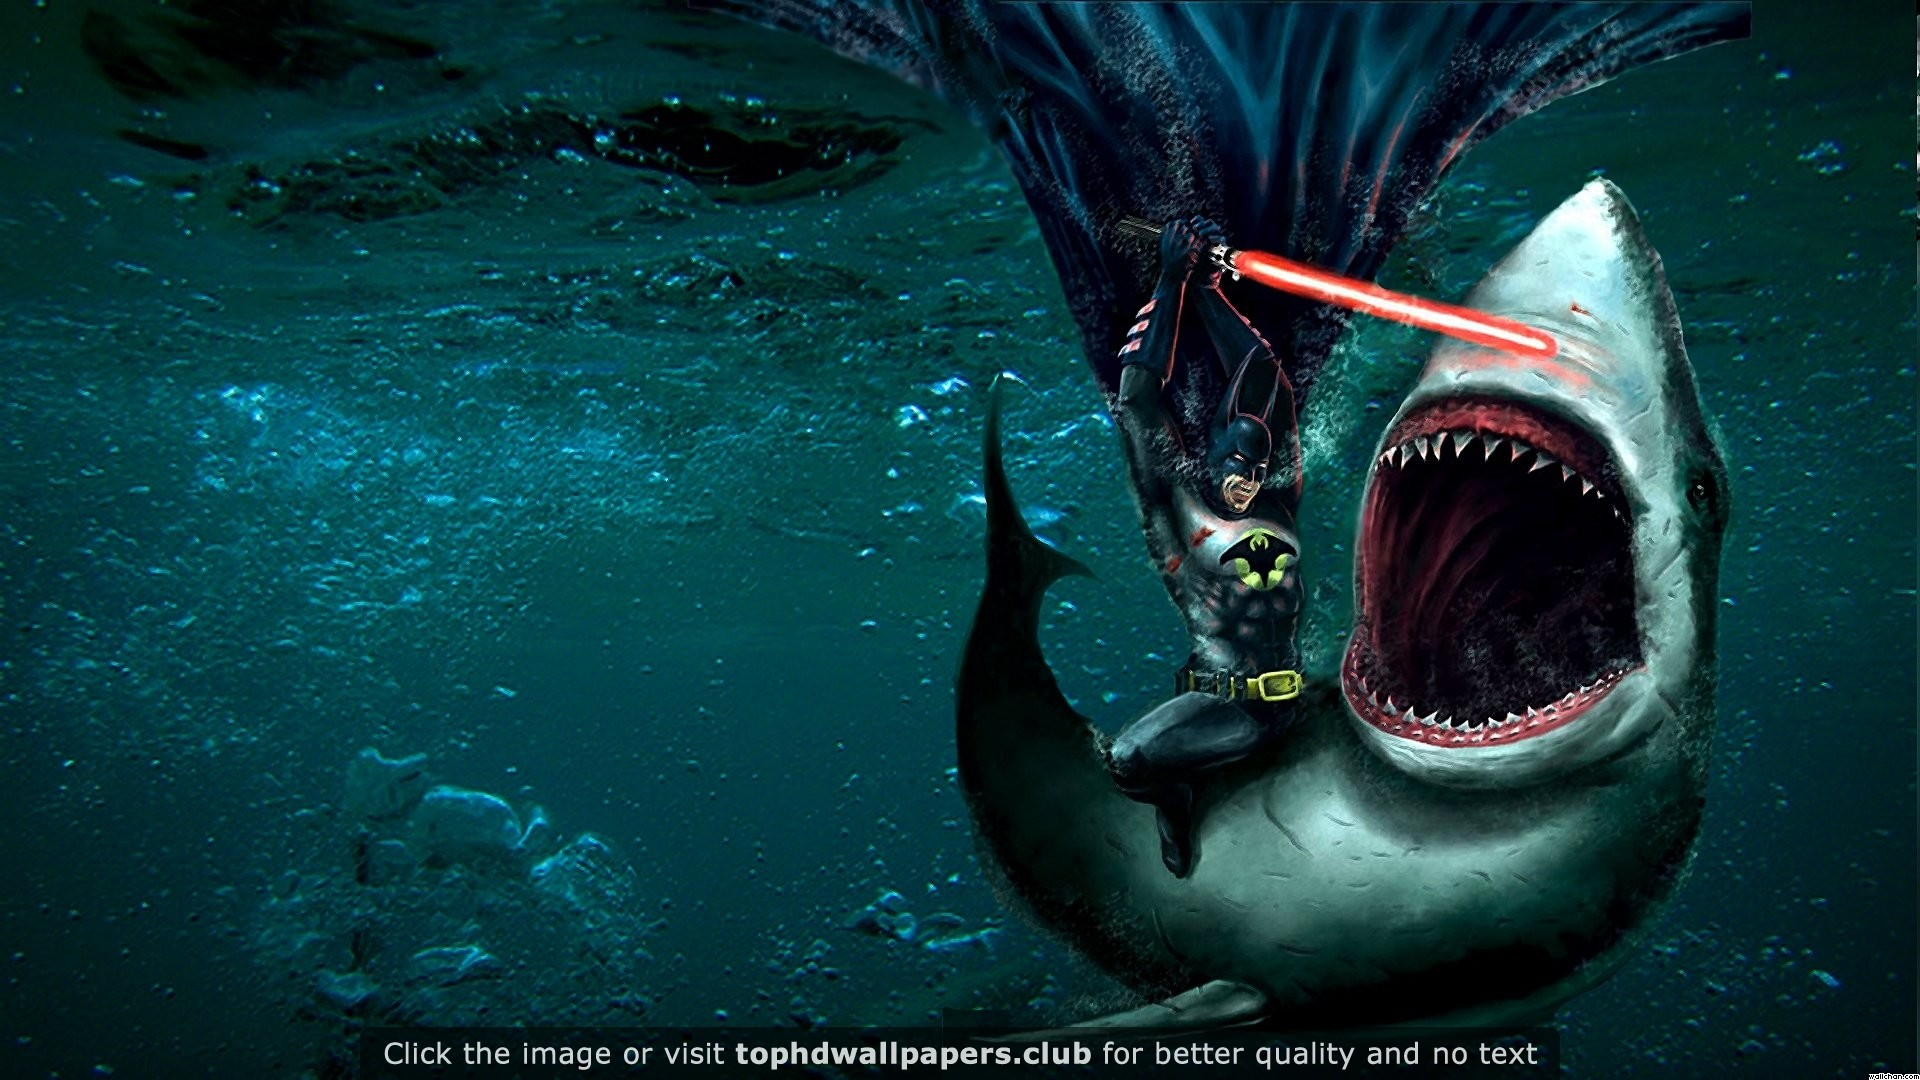 1920x1080 Batman Fighting a Shark With a Lightsaber 4K or HD wallpaper for your PC,  Mac